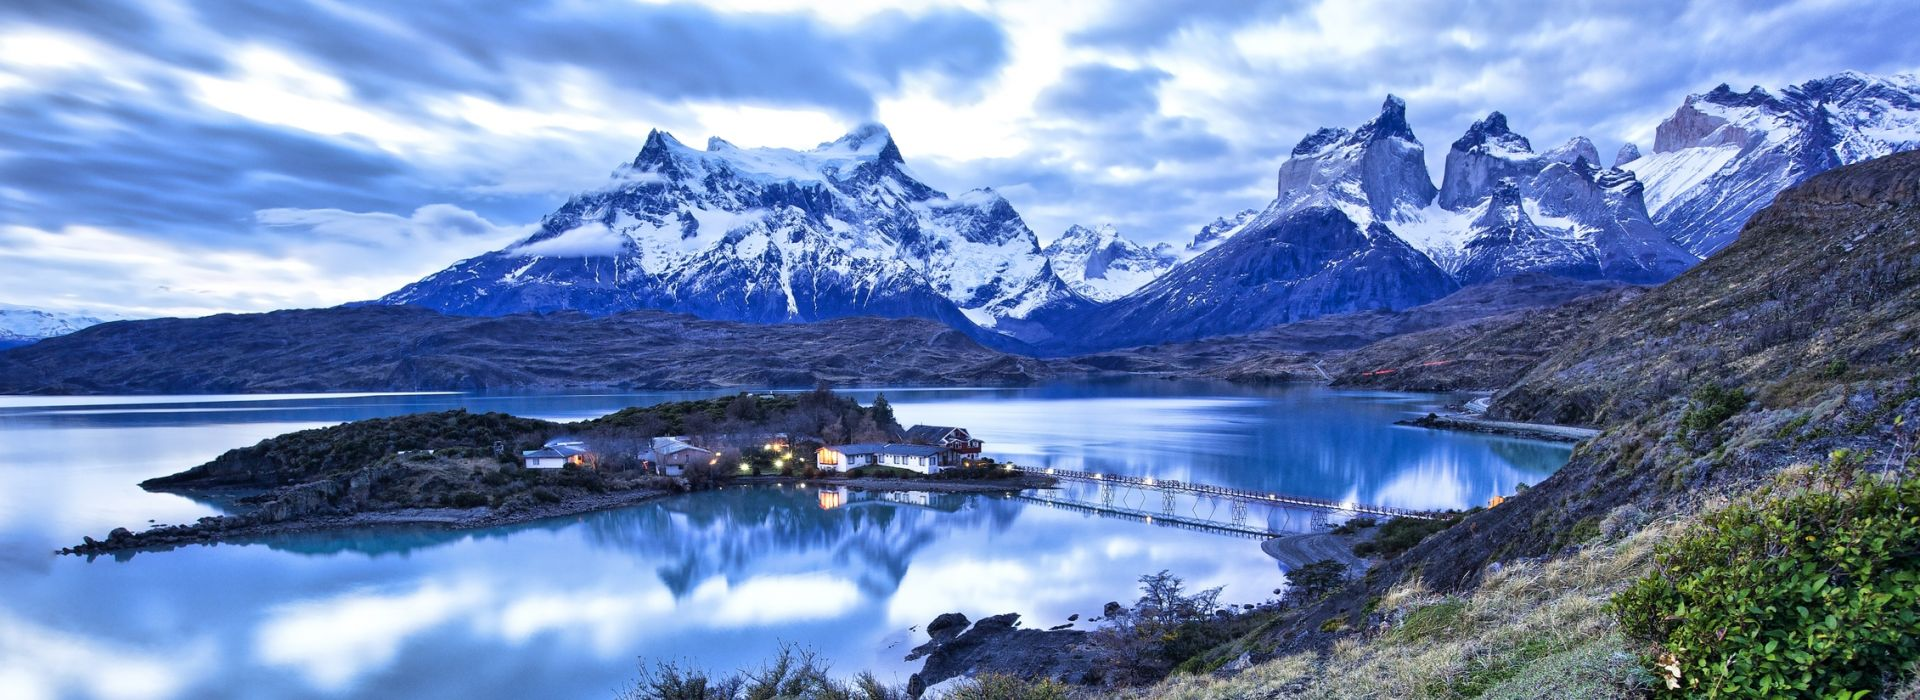 Natural Landmarks Sightseeing Tours in Chile